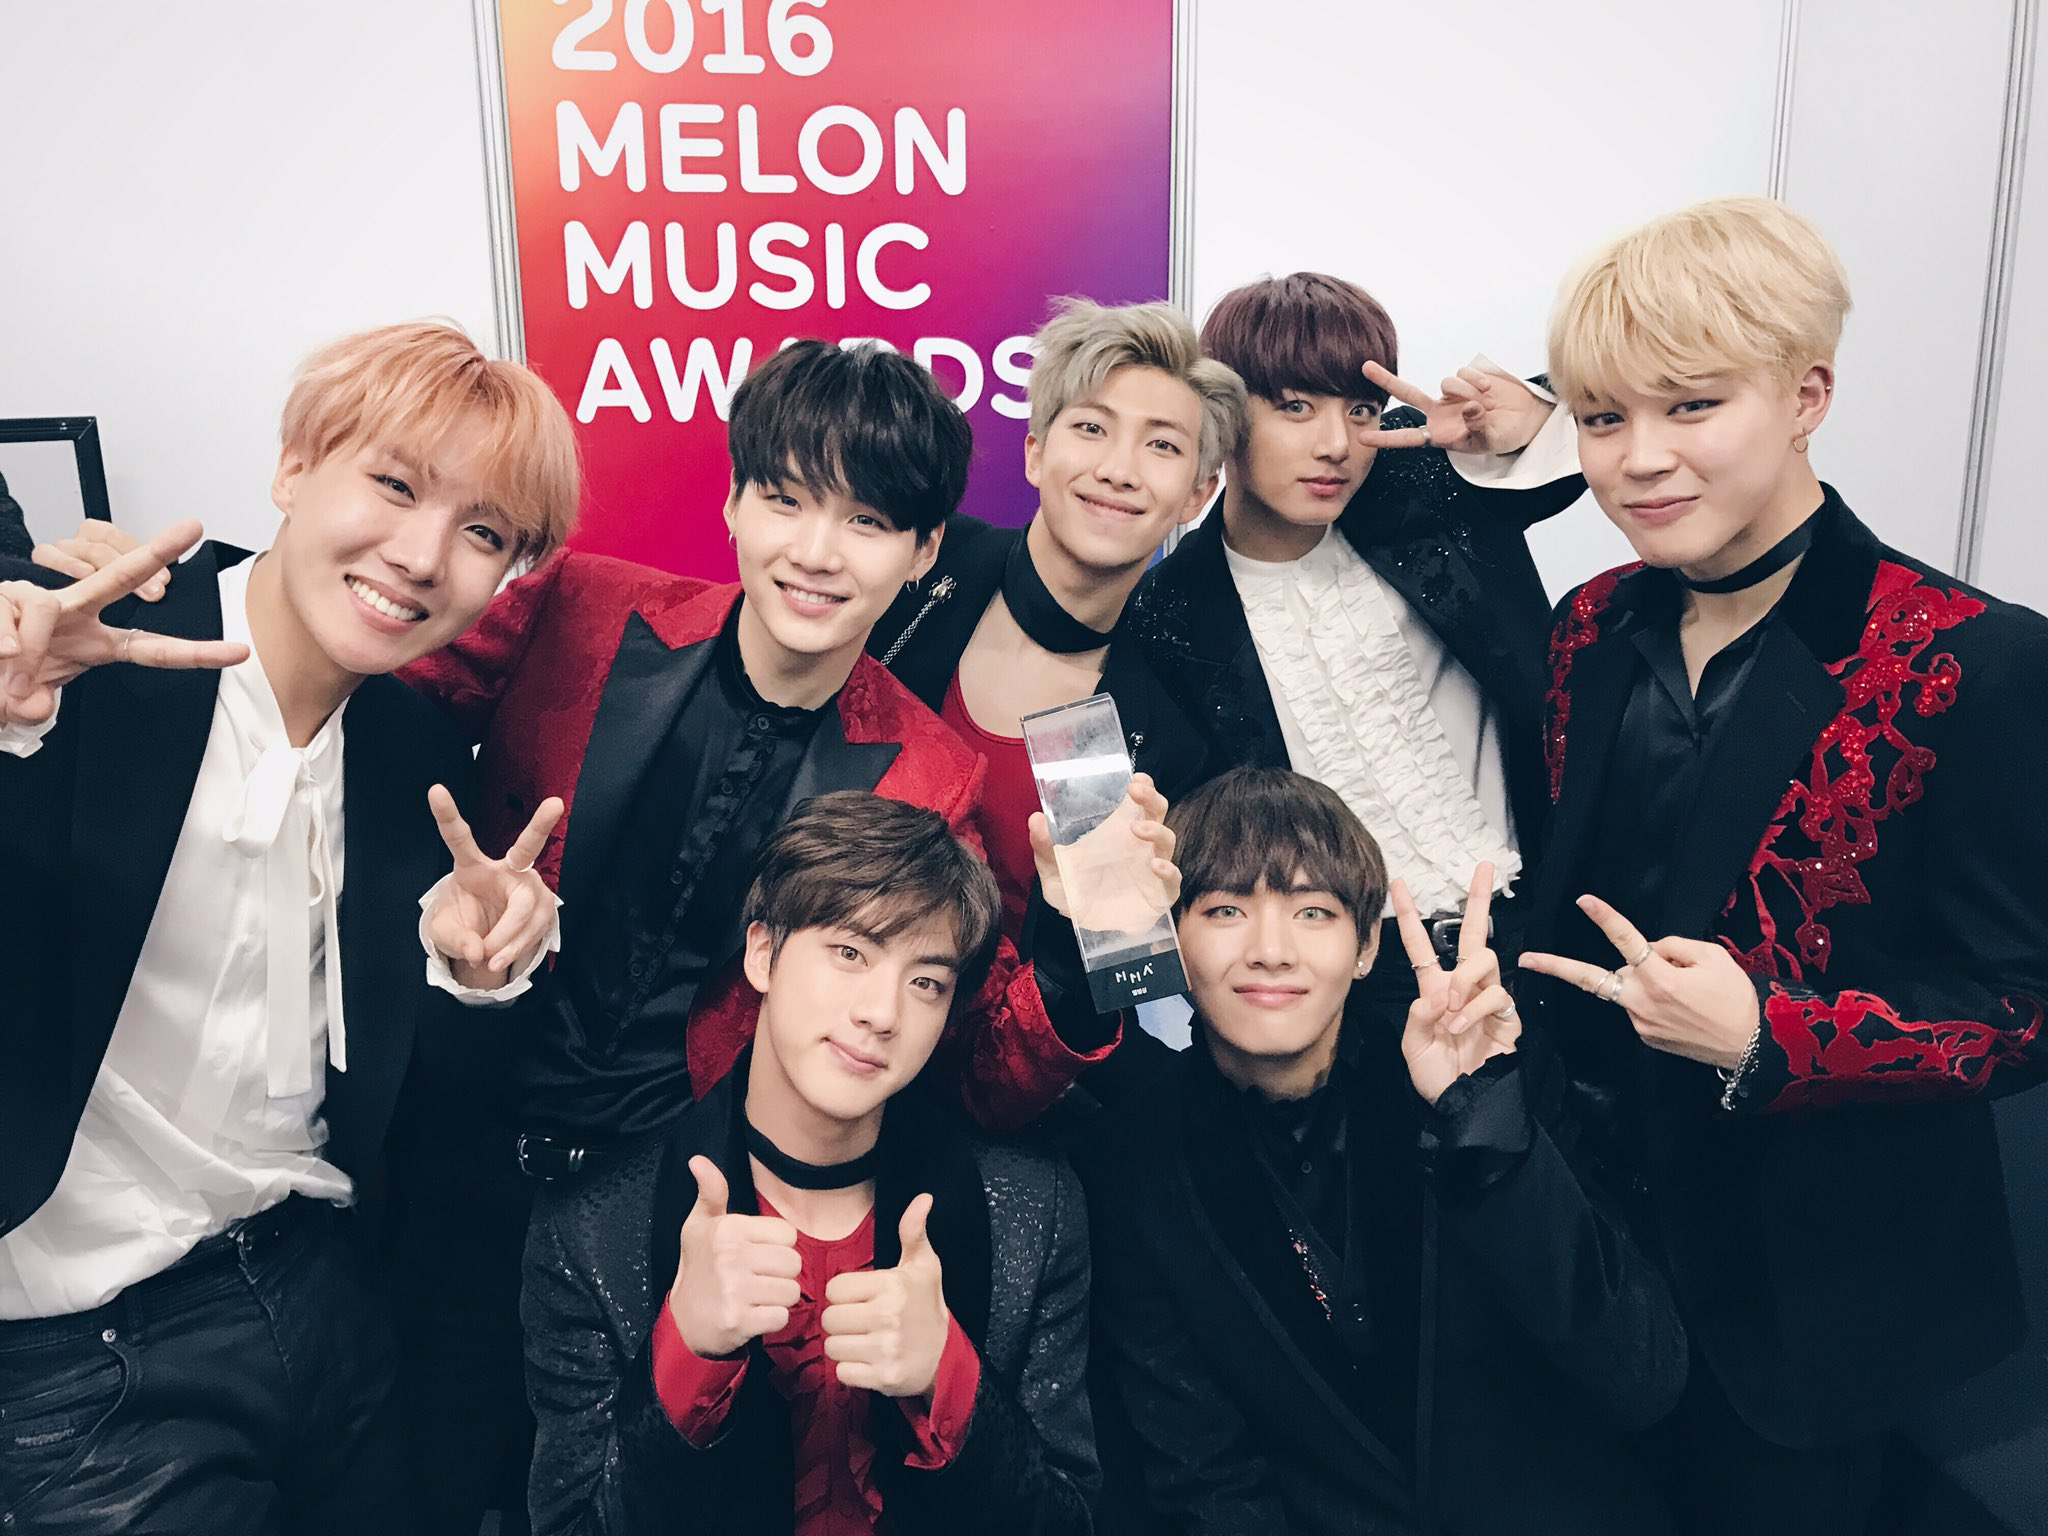 BTS Wins Best Album Of The Year At The 2016 Melon Music Awards